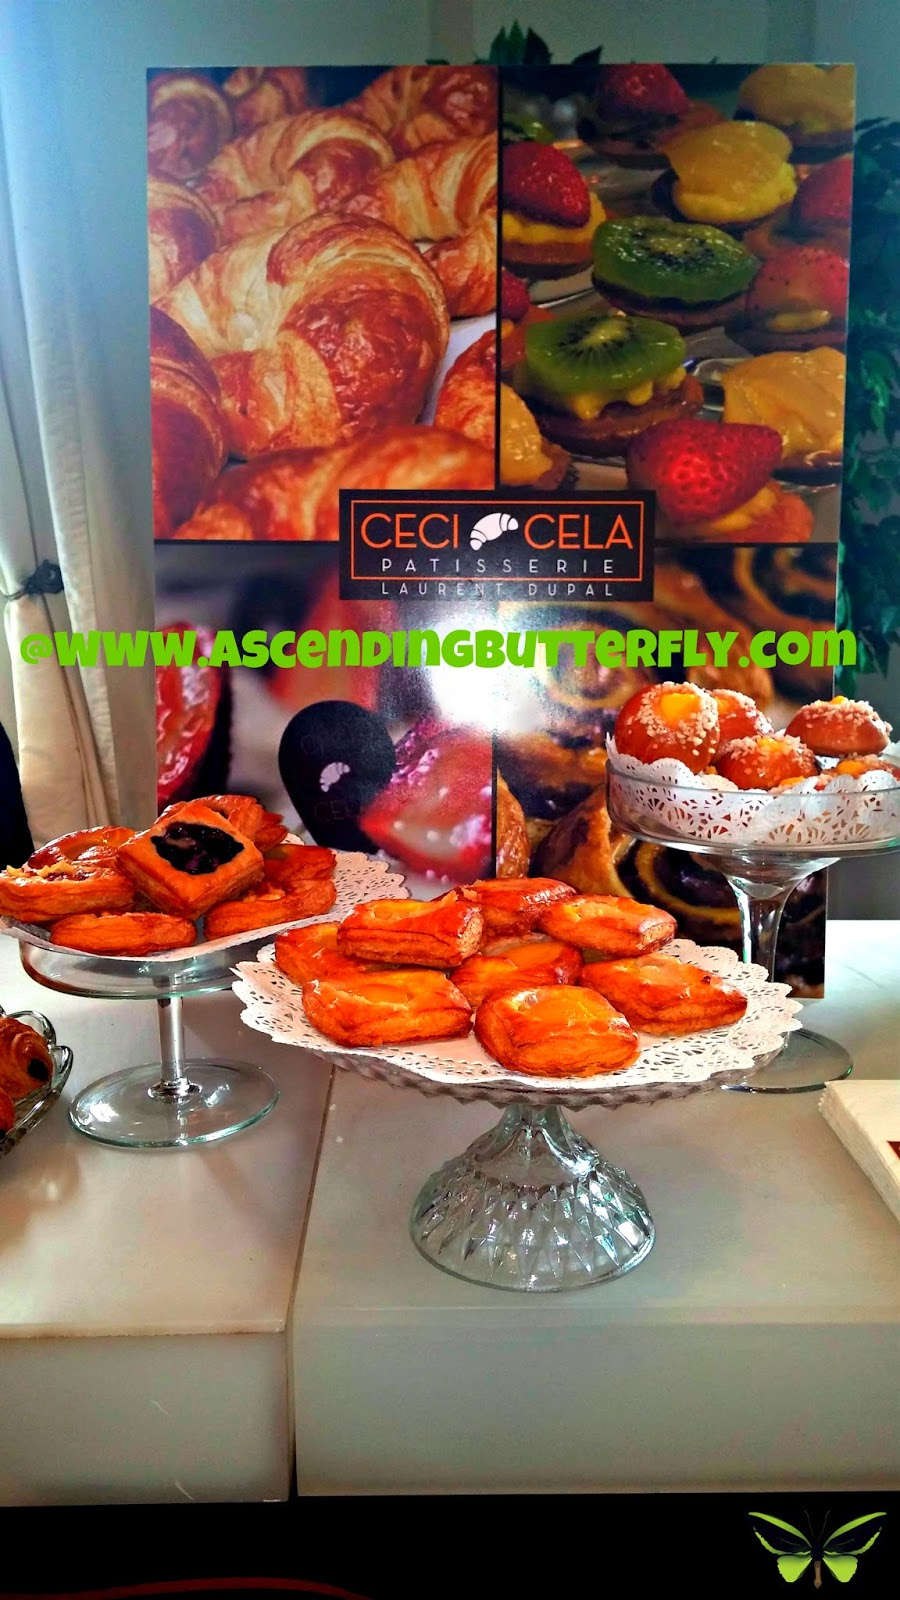 Ceci Cela Patisserie Pastries Display at BeautyPress Spotlight Day February 2014